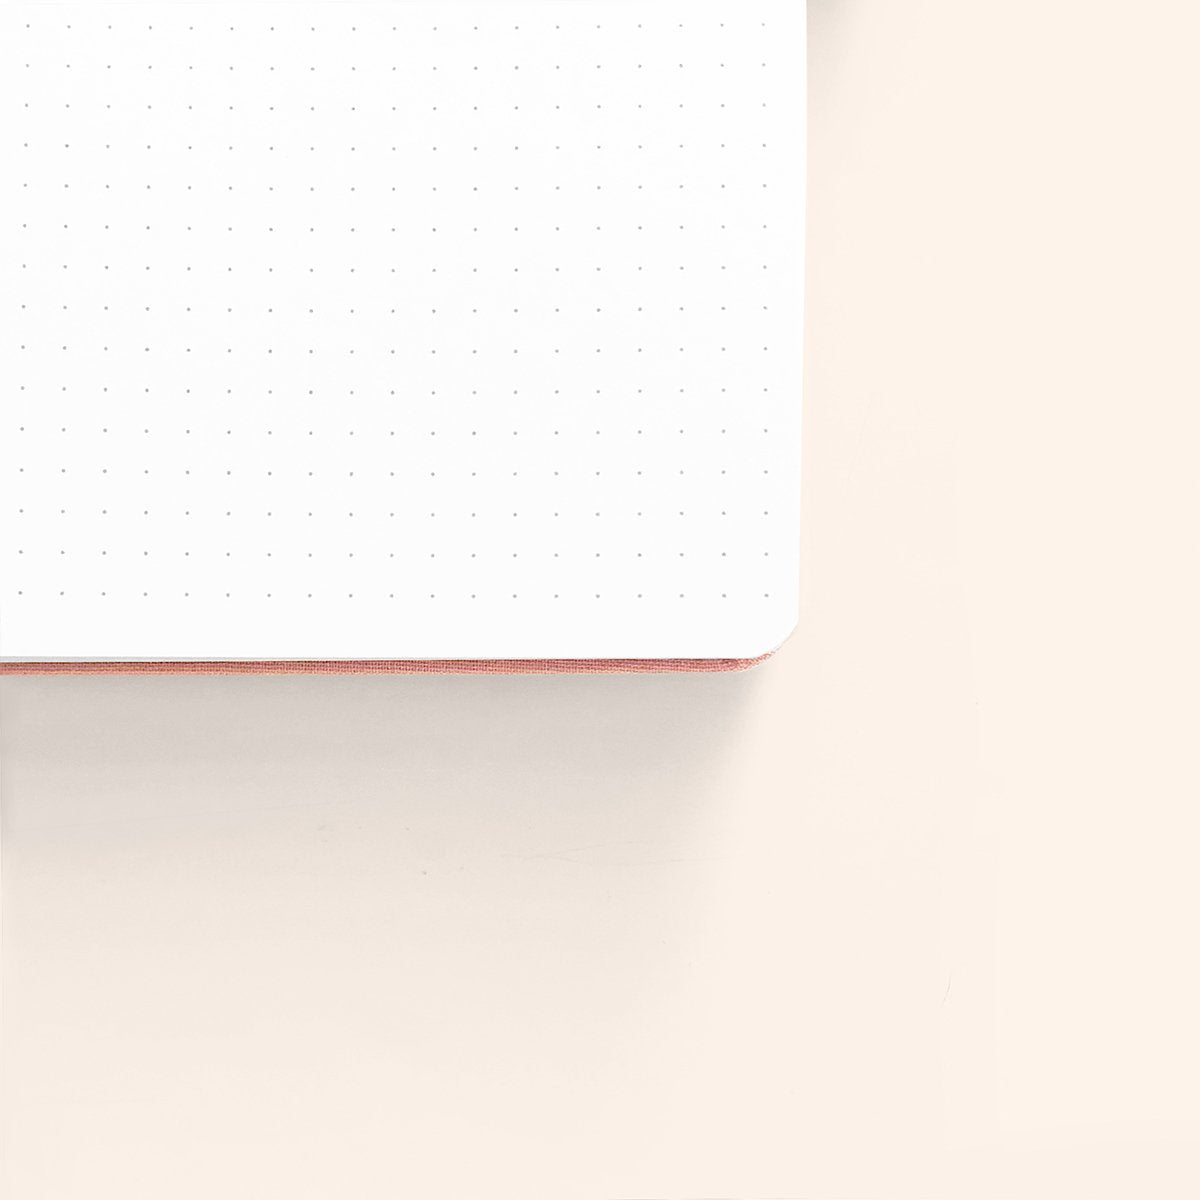 B6 DOT GRID NOTEBOOK : NIGHT SKY